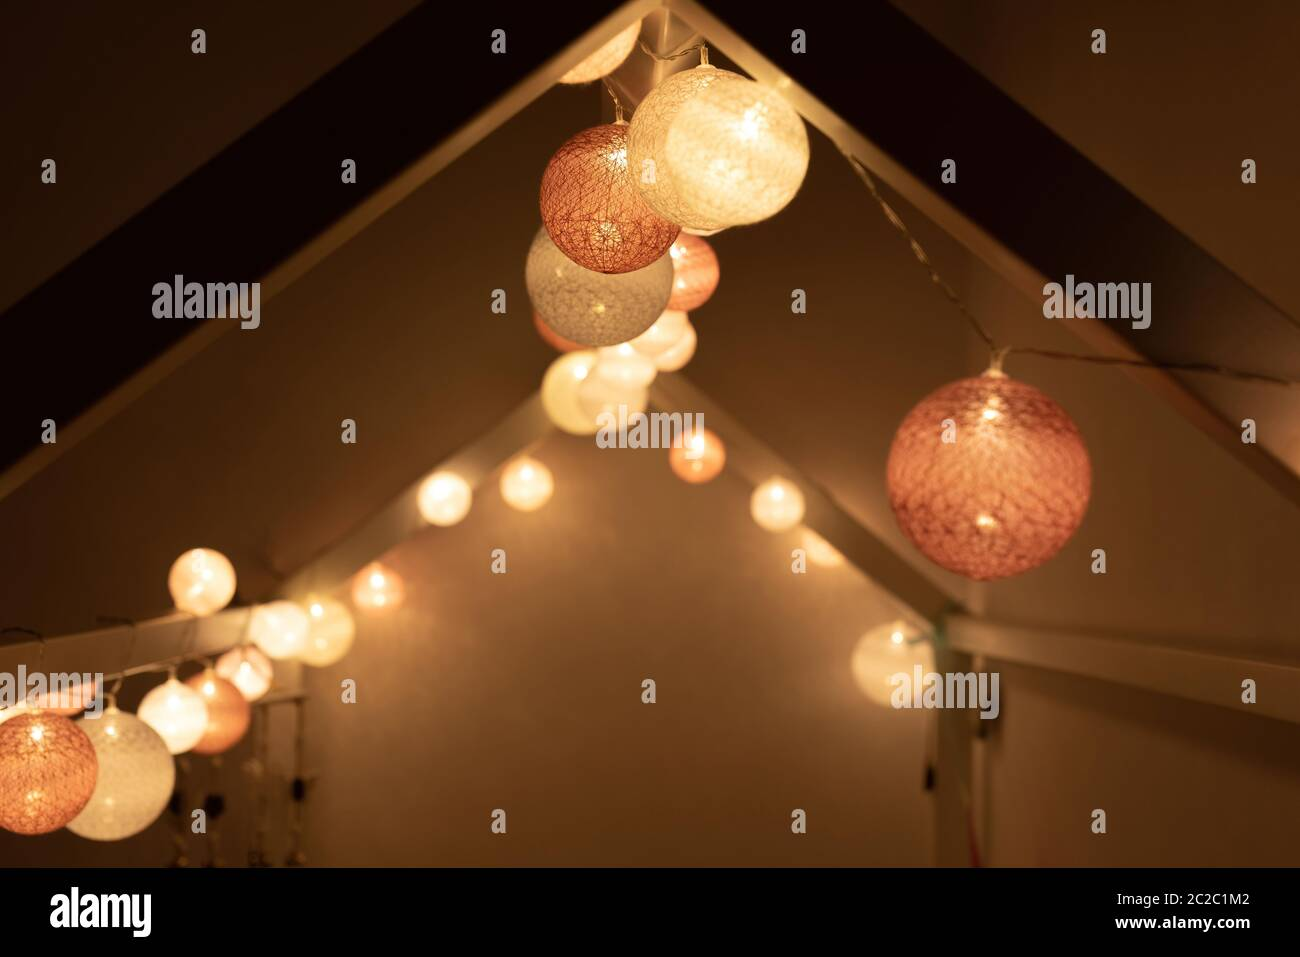 Roof shaped bed canopy decorated in montessori room with bright light garland illuminating dark bedroom in evening at home Stock Photo